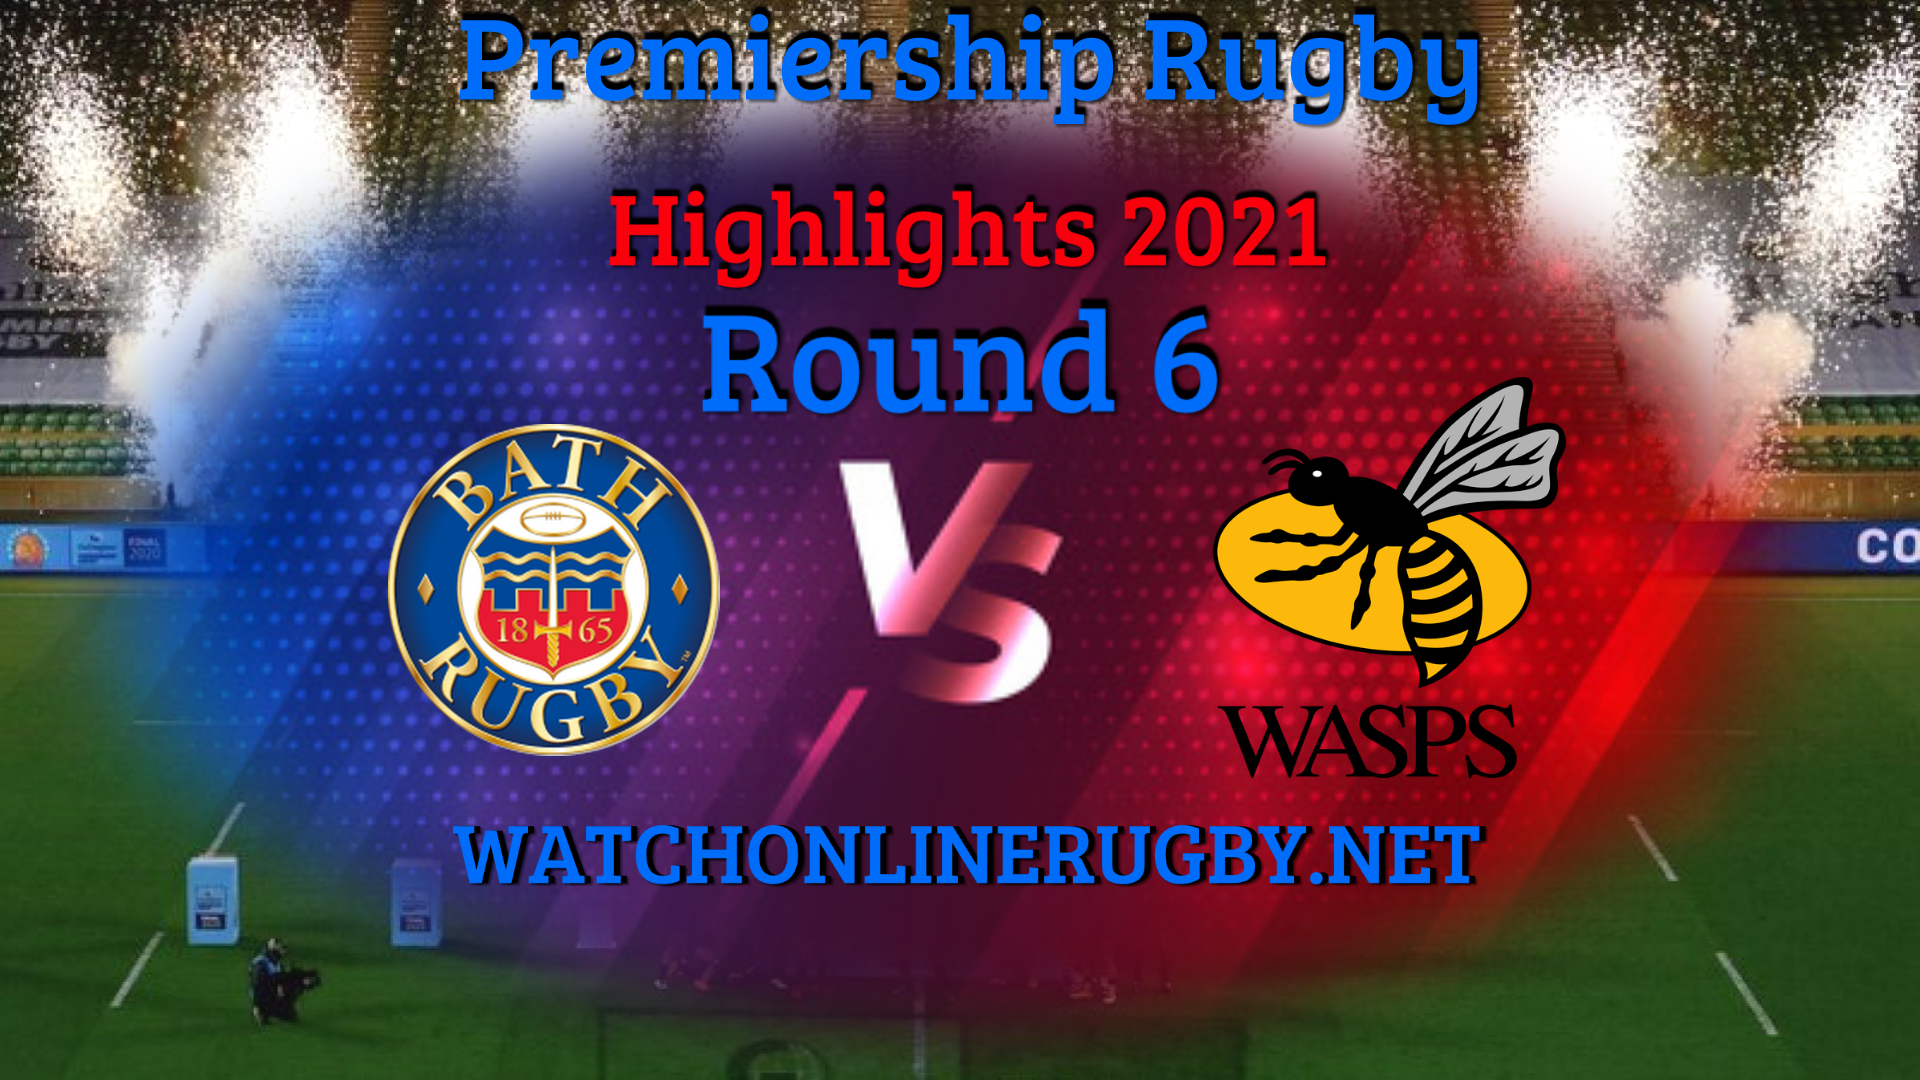 Bath Rugby VS Wasps Premiership Rugby 2021 RD 6